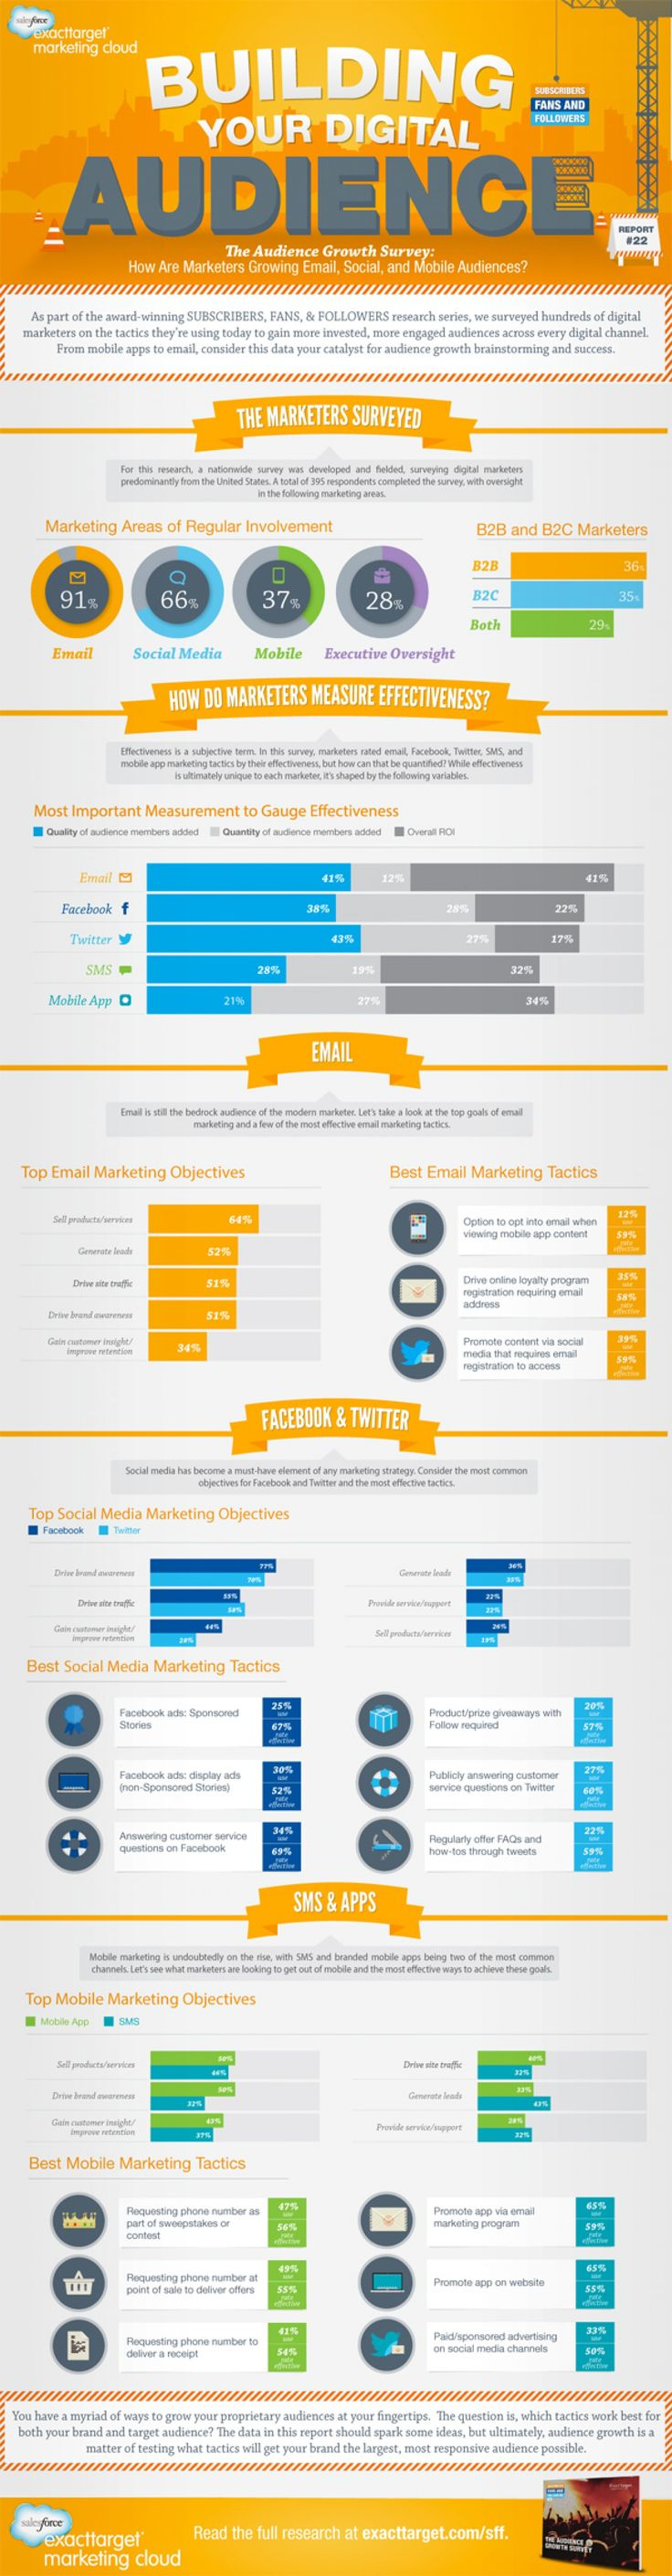 How to Grow Your Email, Mobile, & Social Audiences   Visual.ly